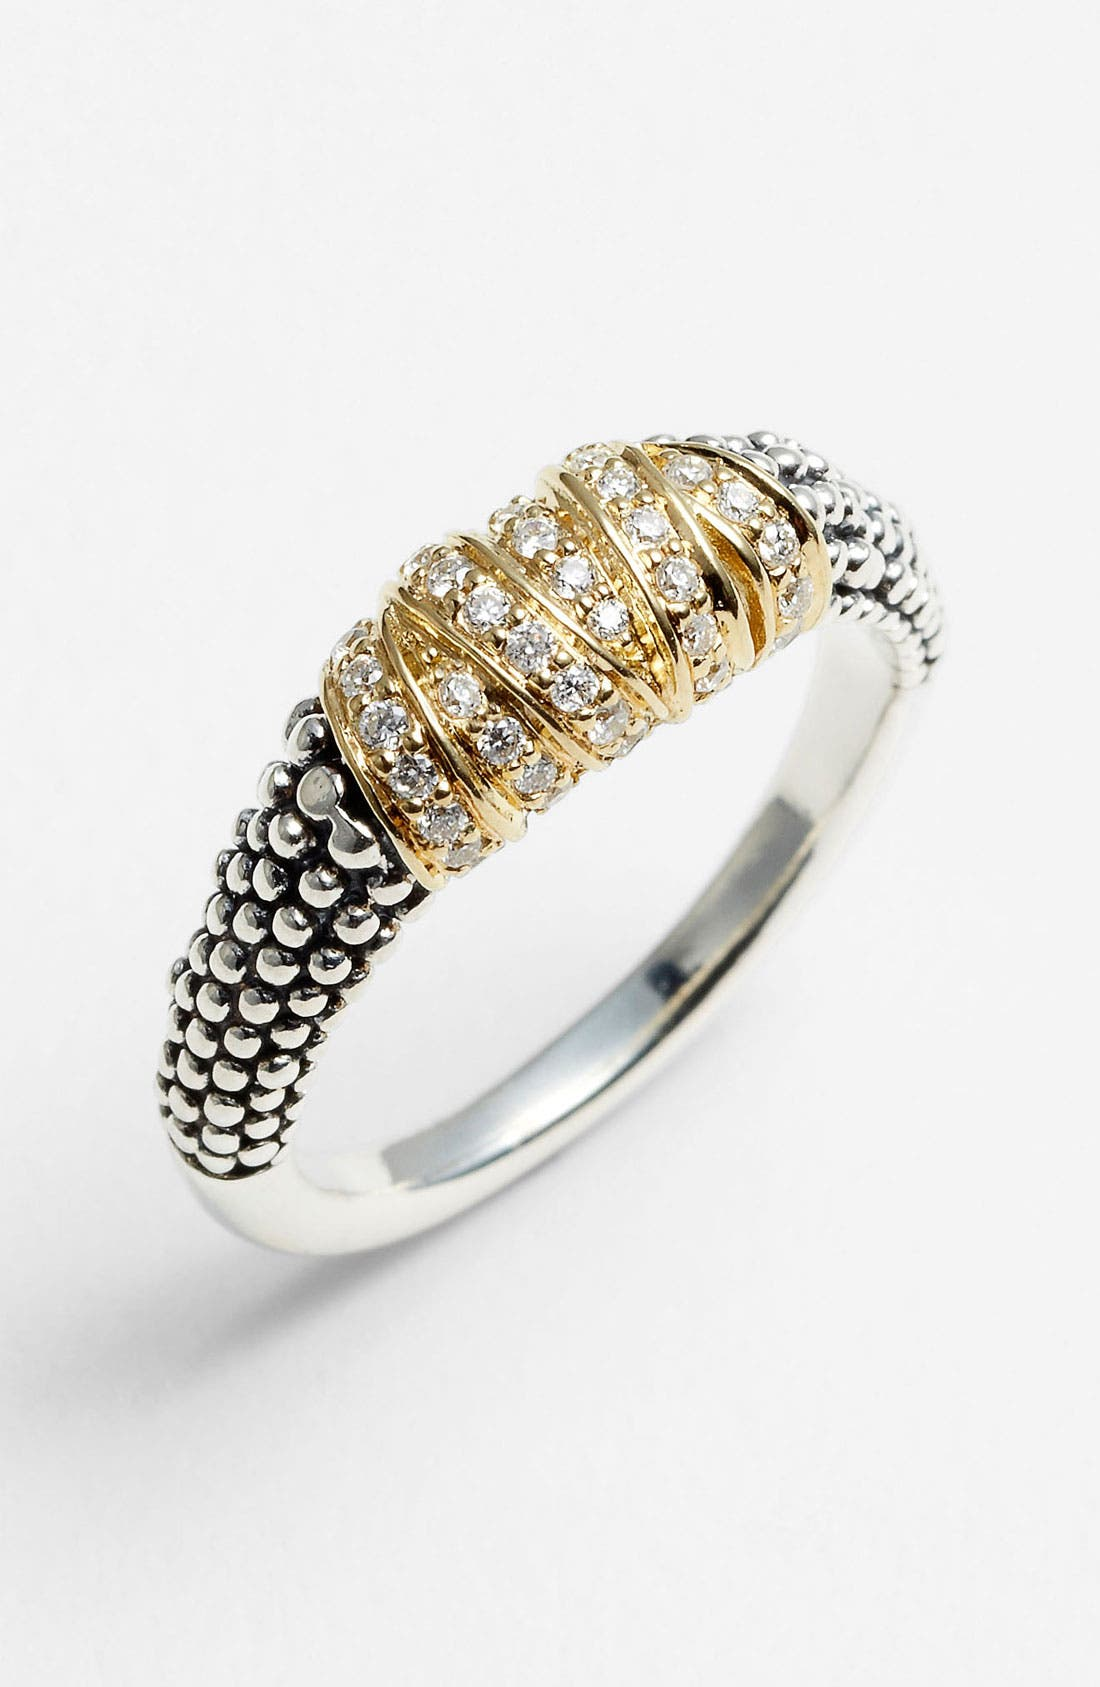 Main Image - Lagos 'Embrace' Diamond & Caviar™ Ring